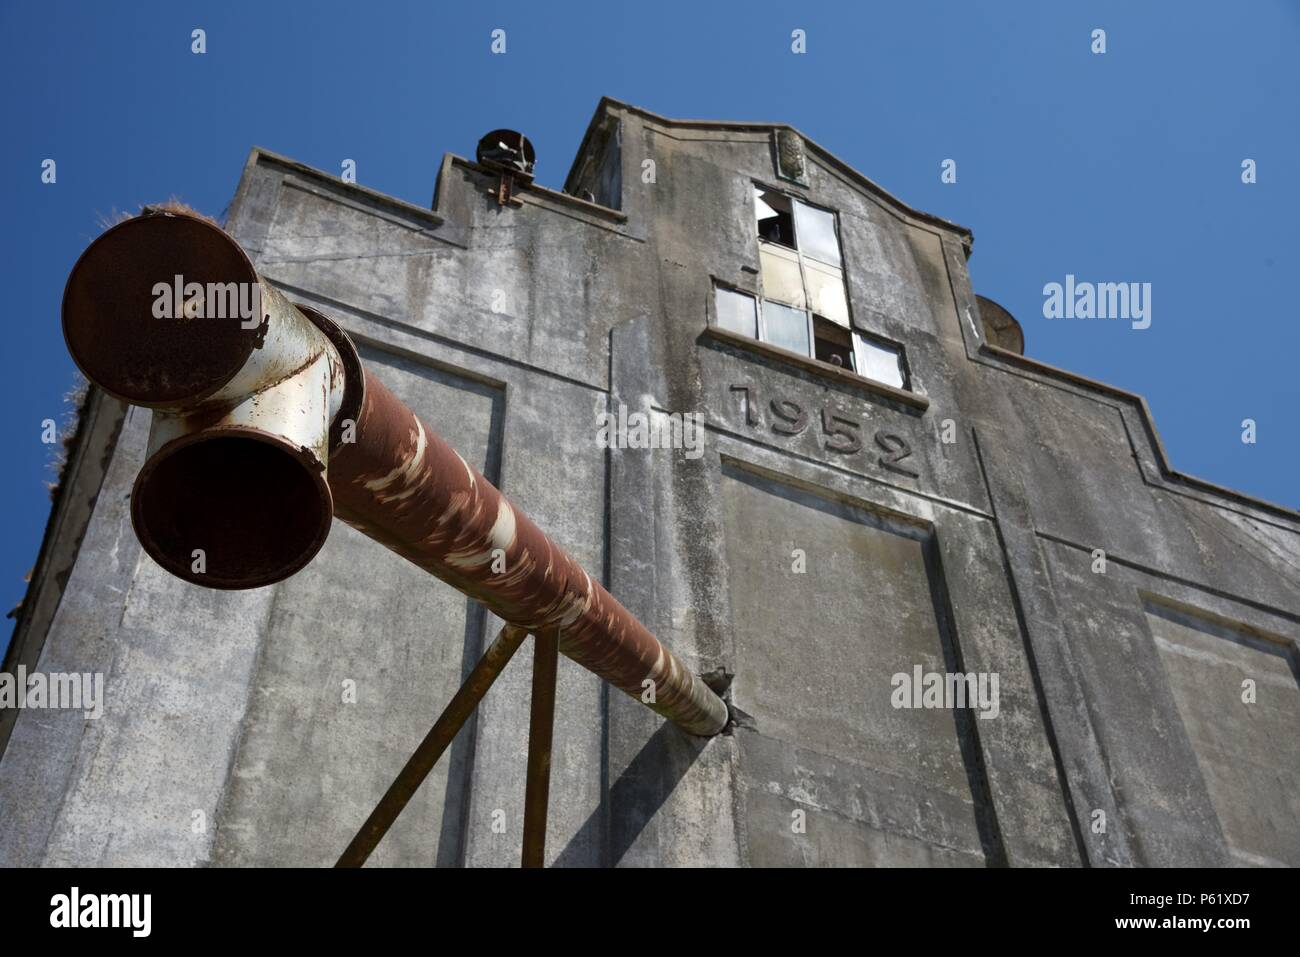 Grain silo: a post world war two co-operative grain collection silo building in northern France - Stock Image